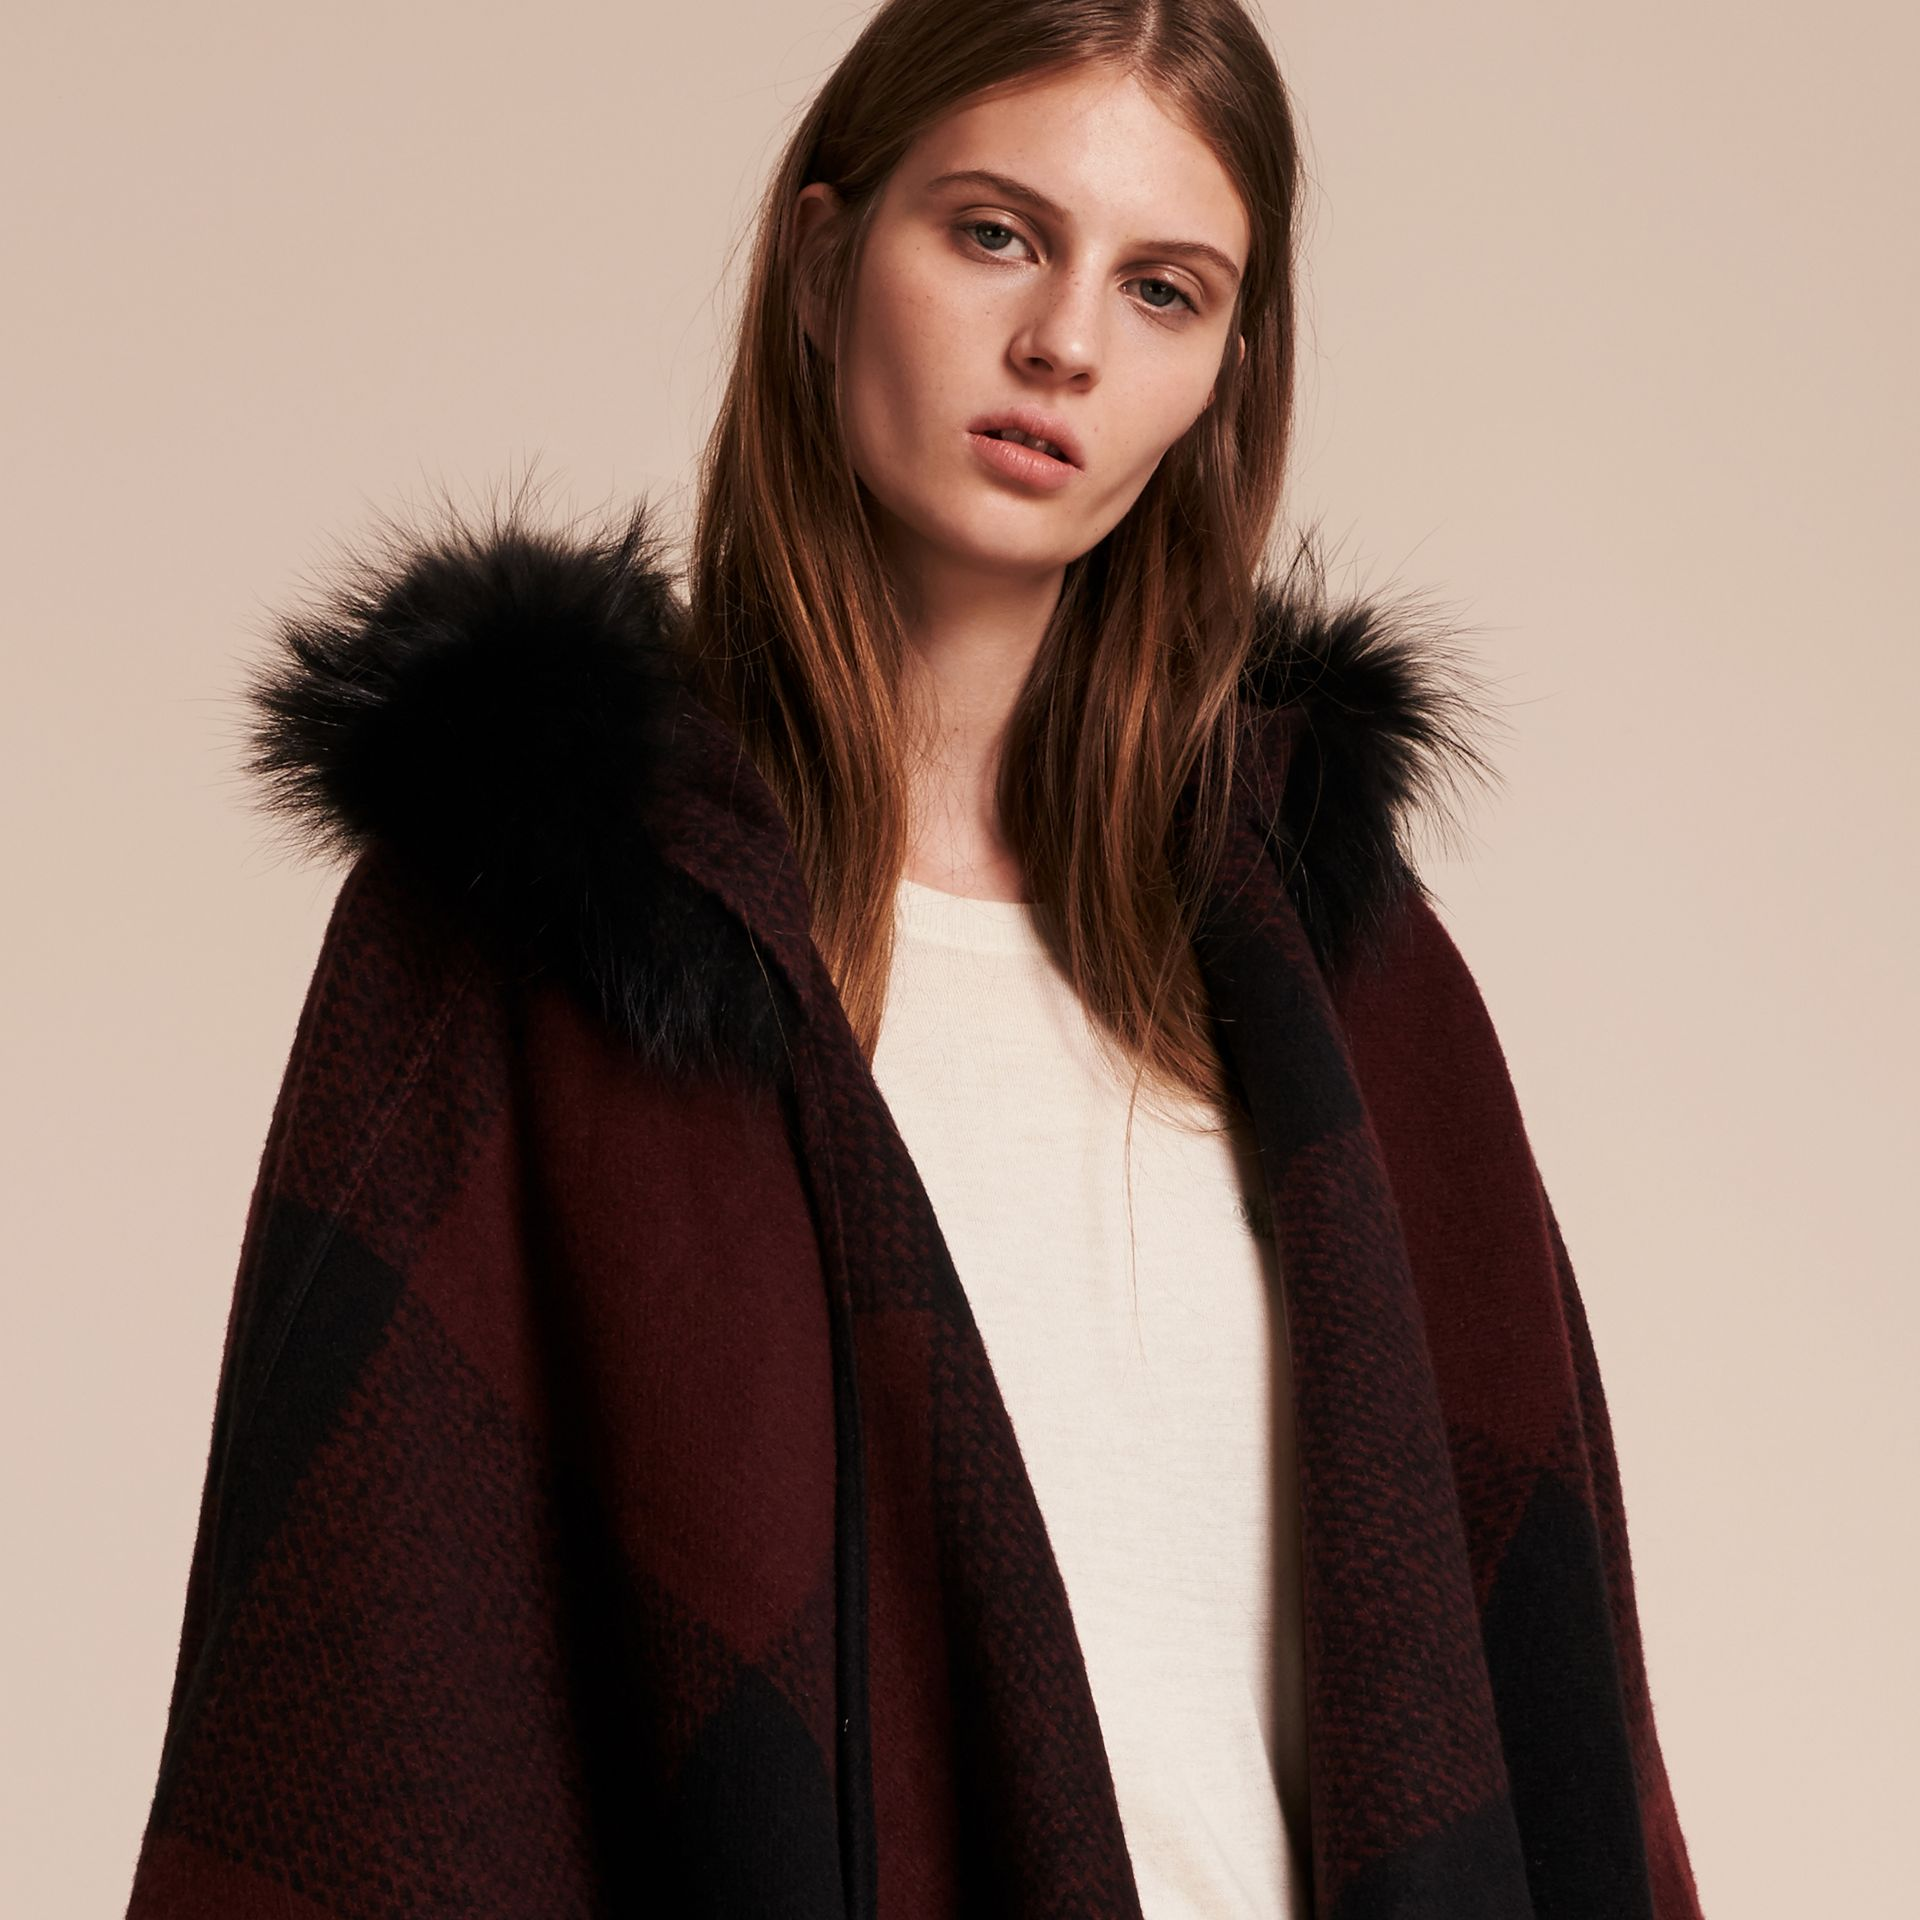 Claret Fur-trimmed Buffalo Check Wool Cashmere Poncho Claret - gallery image 6